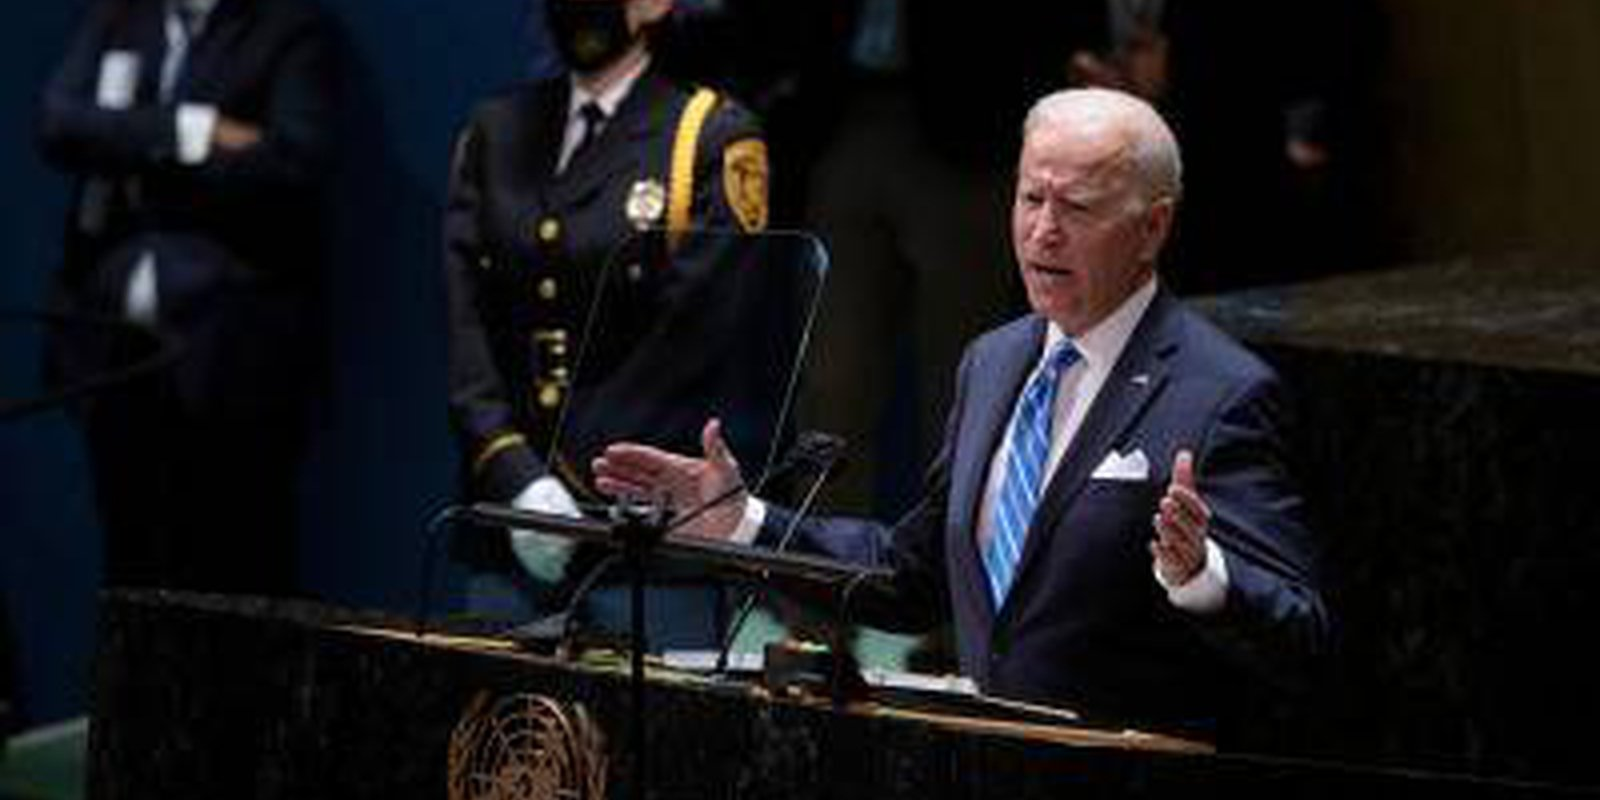 US president Joe Biden addresses the 76th Session of the UN General Assembly on September 21, 2021 in New York. Photo by BRENDAN SMIALOWSKI/AFP via Getty Images.